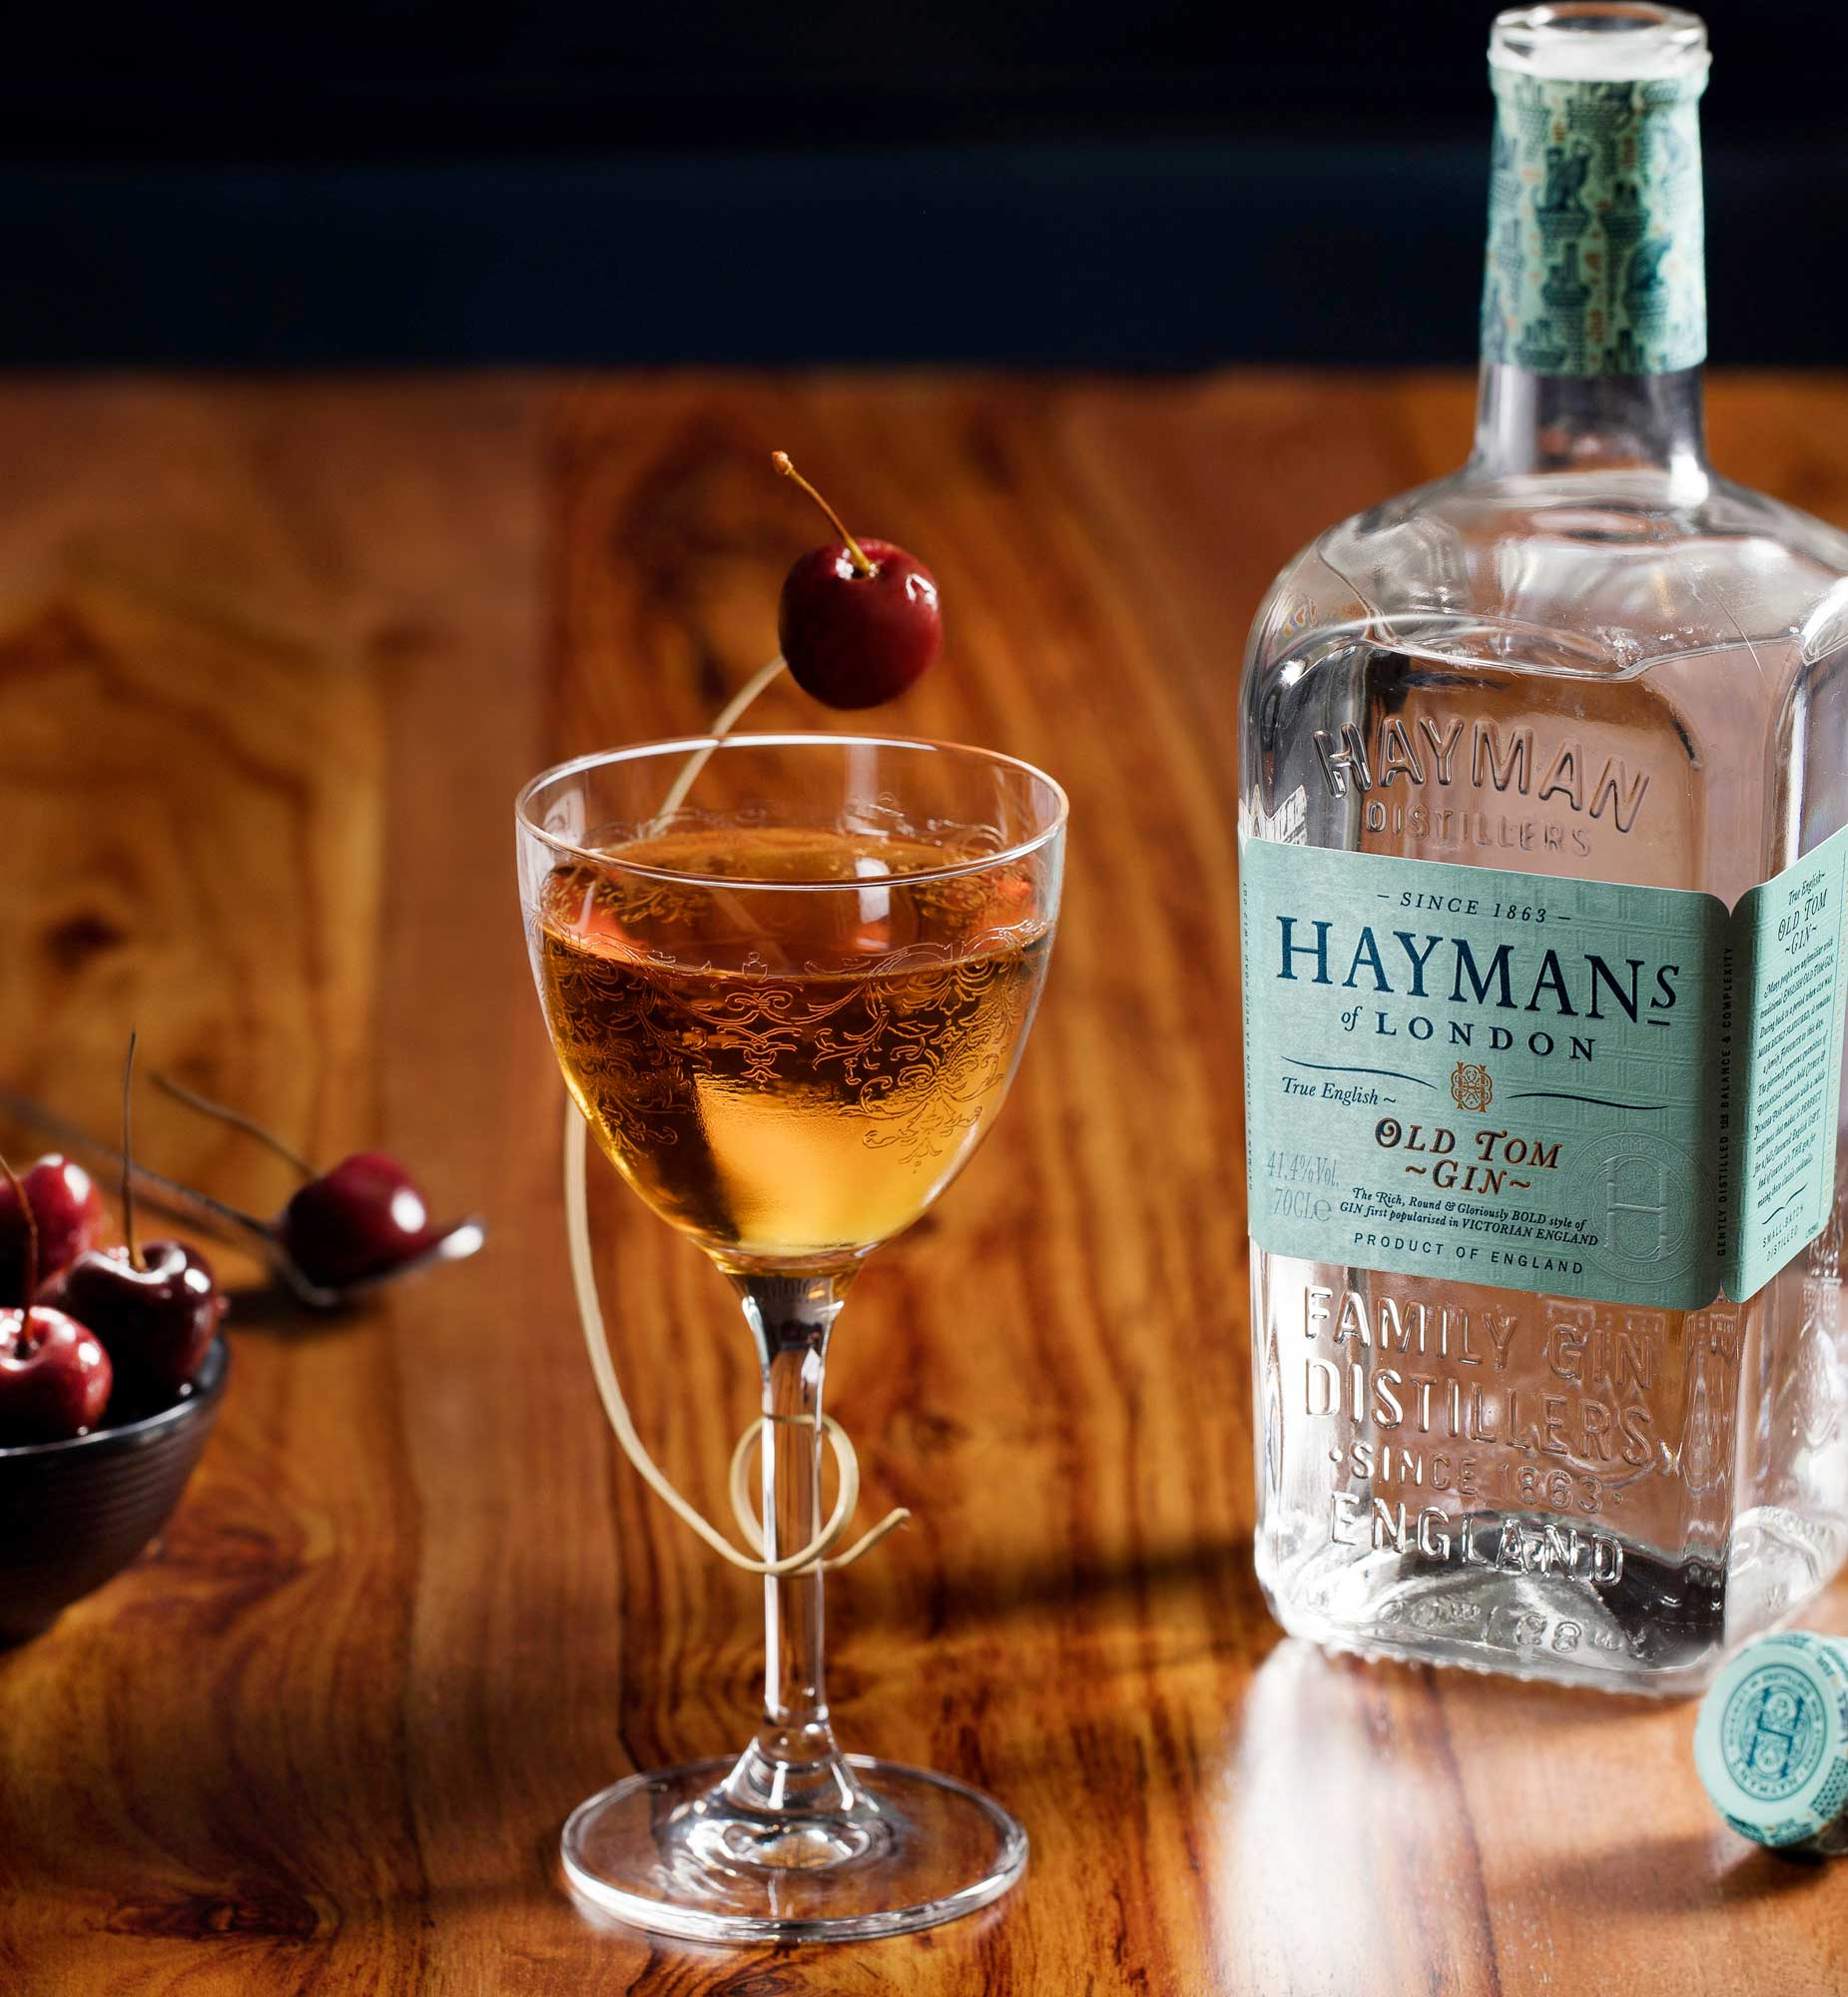 An example of the Martinez, the mixed drink (cocktail) featuring Hayman's Old Tom Gin, Cocchi Vermouth di Torino, maraschino liqueur, and orange bitters; photo by Hayman's of London